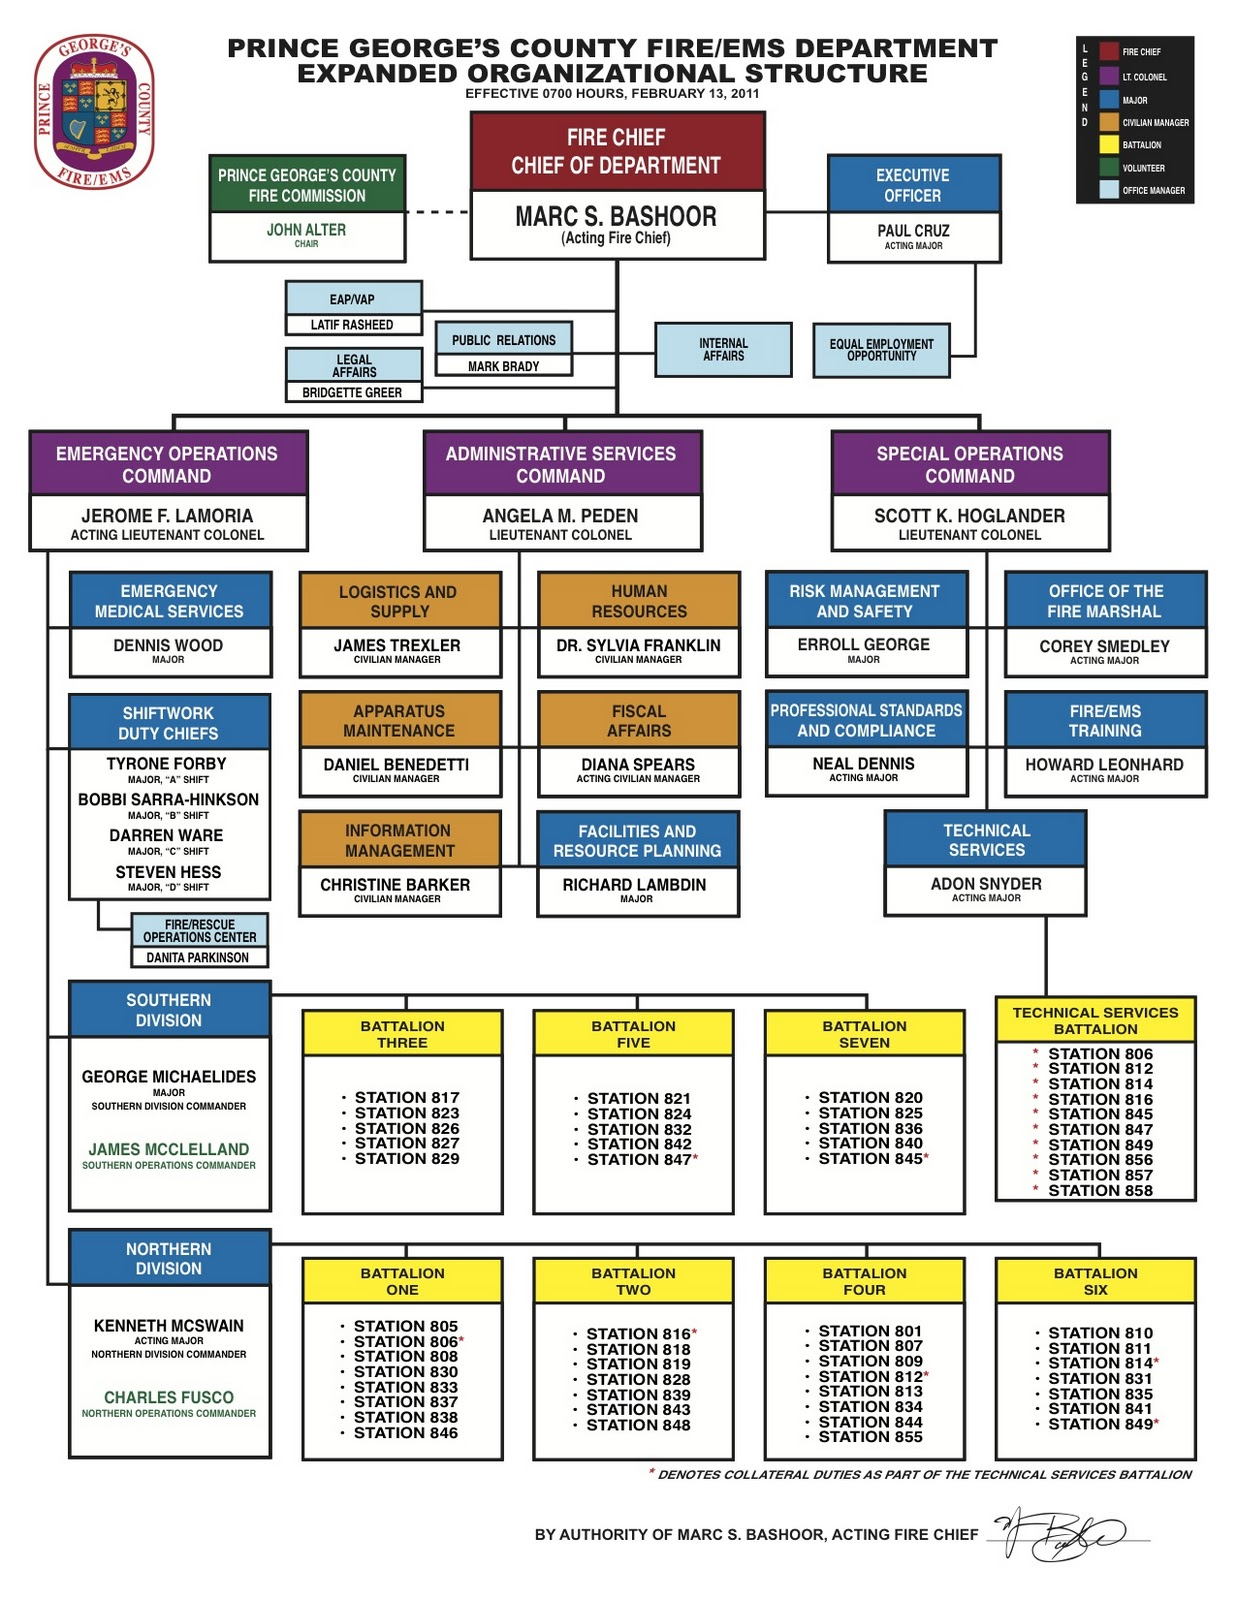 Wonderful Updated PGFD Organizational Chart